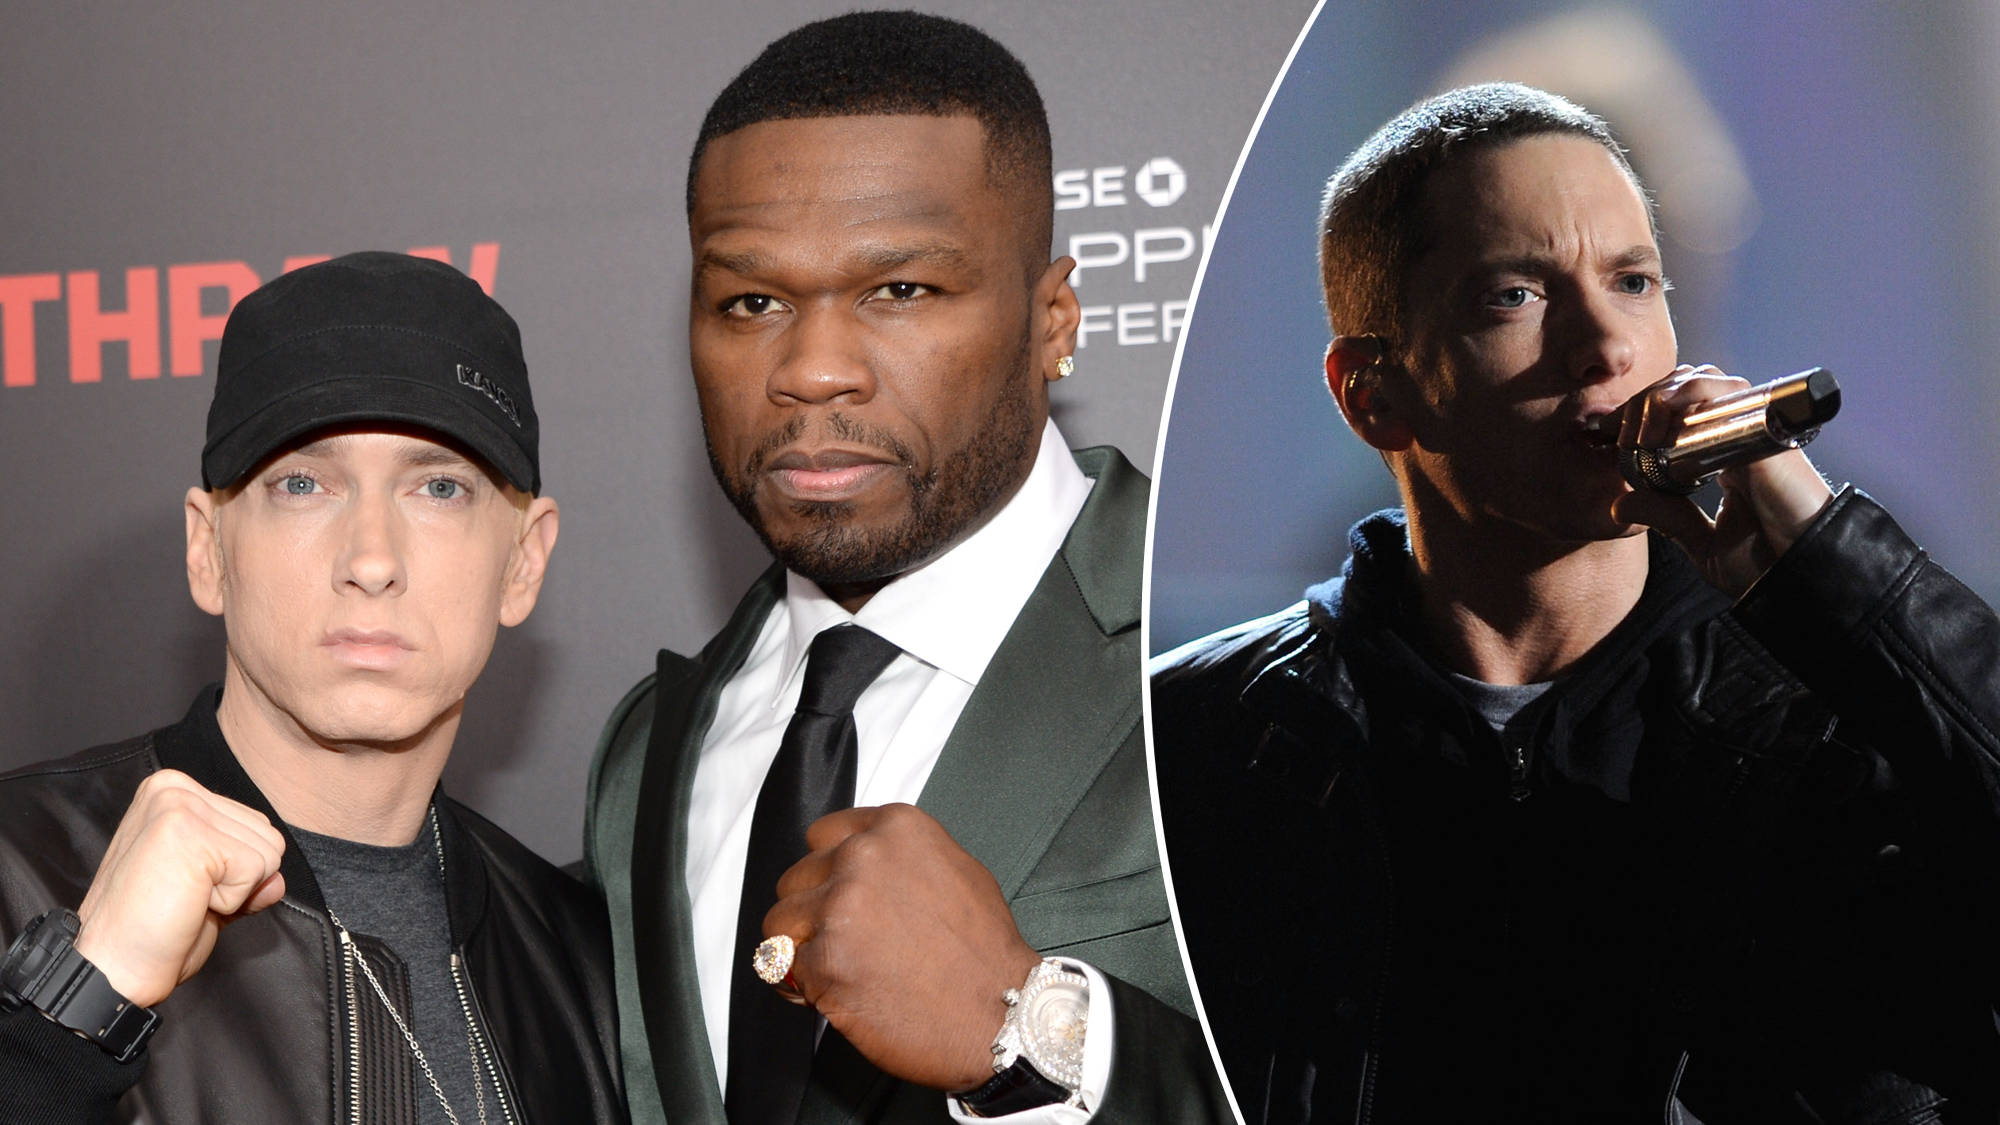 50 Cent Confirms Eminem Is Working On A New Album